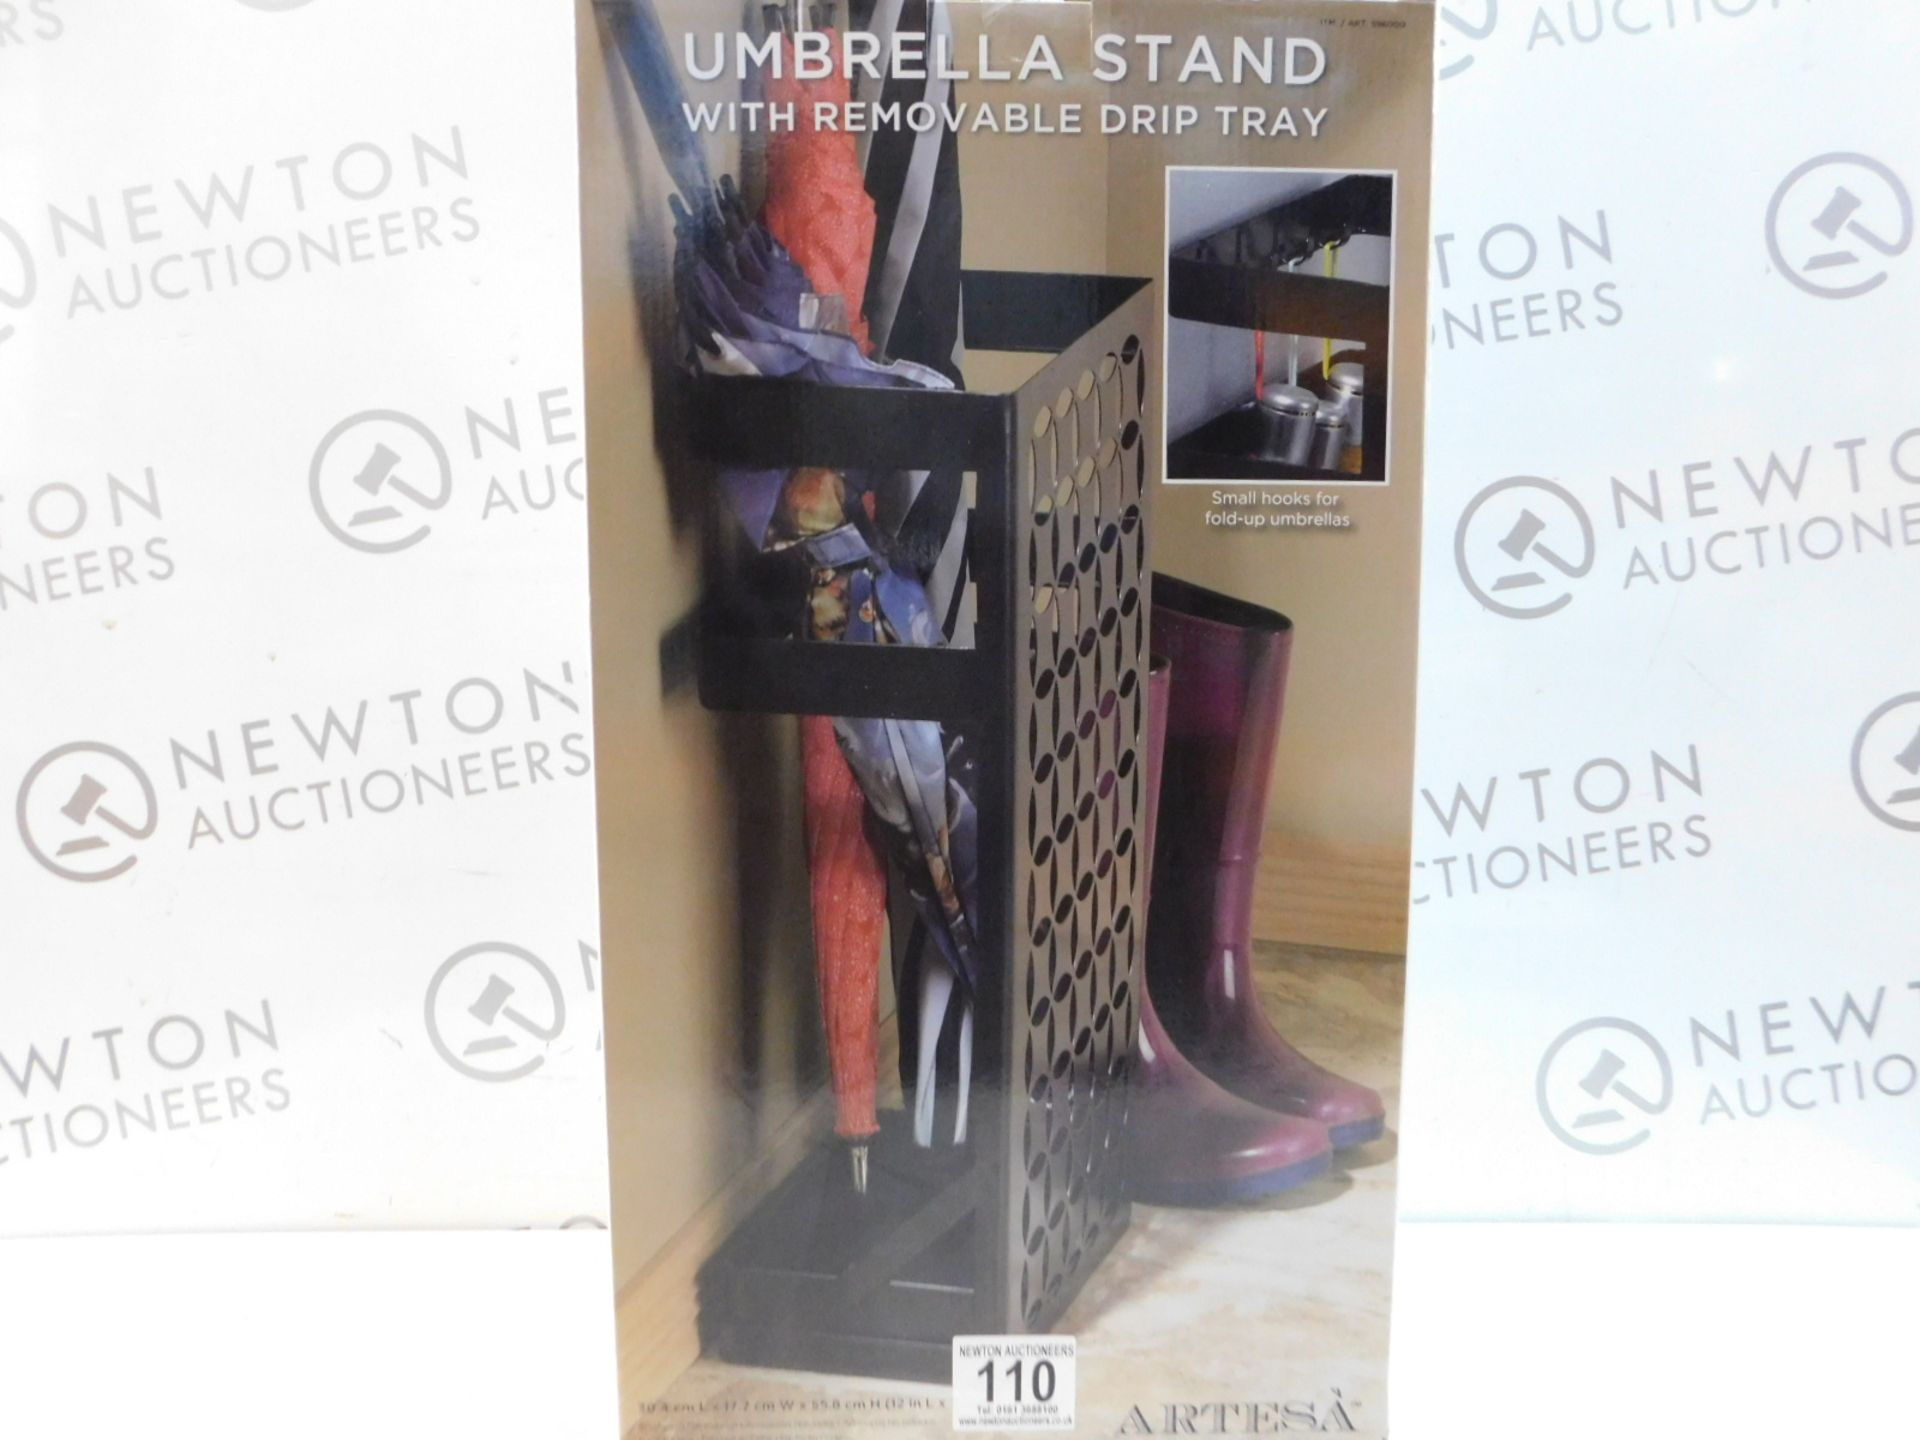 Lot 110 - 1 BRAND NEW BOXED ARTESA UMBRELLA STAND WITH REMOVABLE DRIP TRAY RRP £44.99